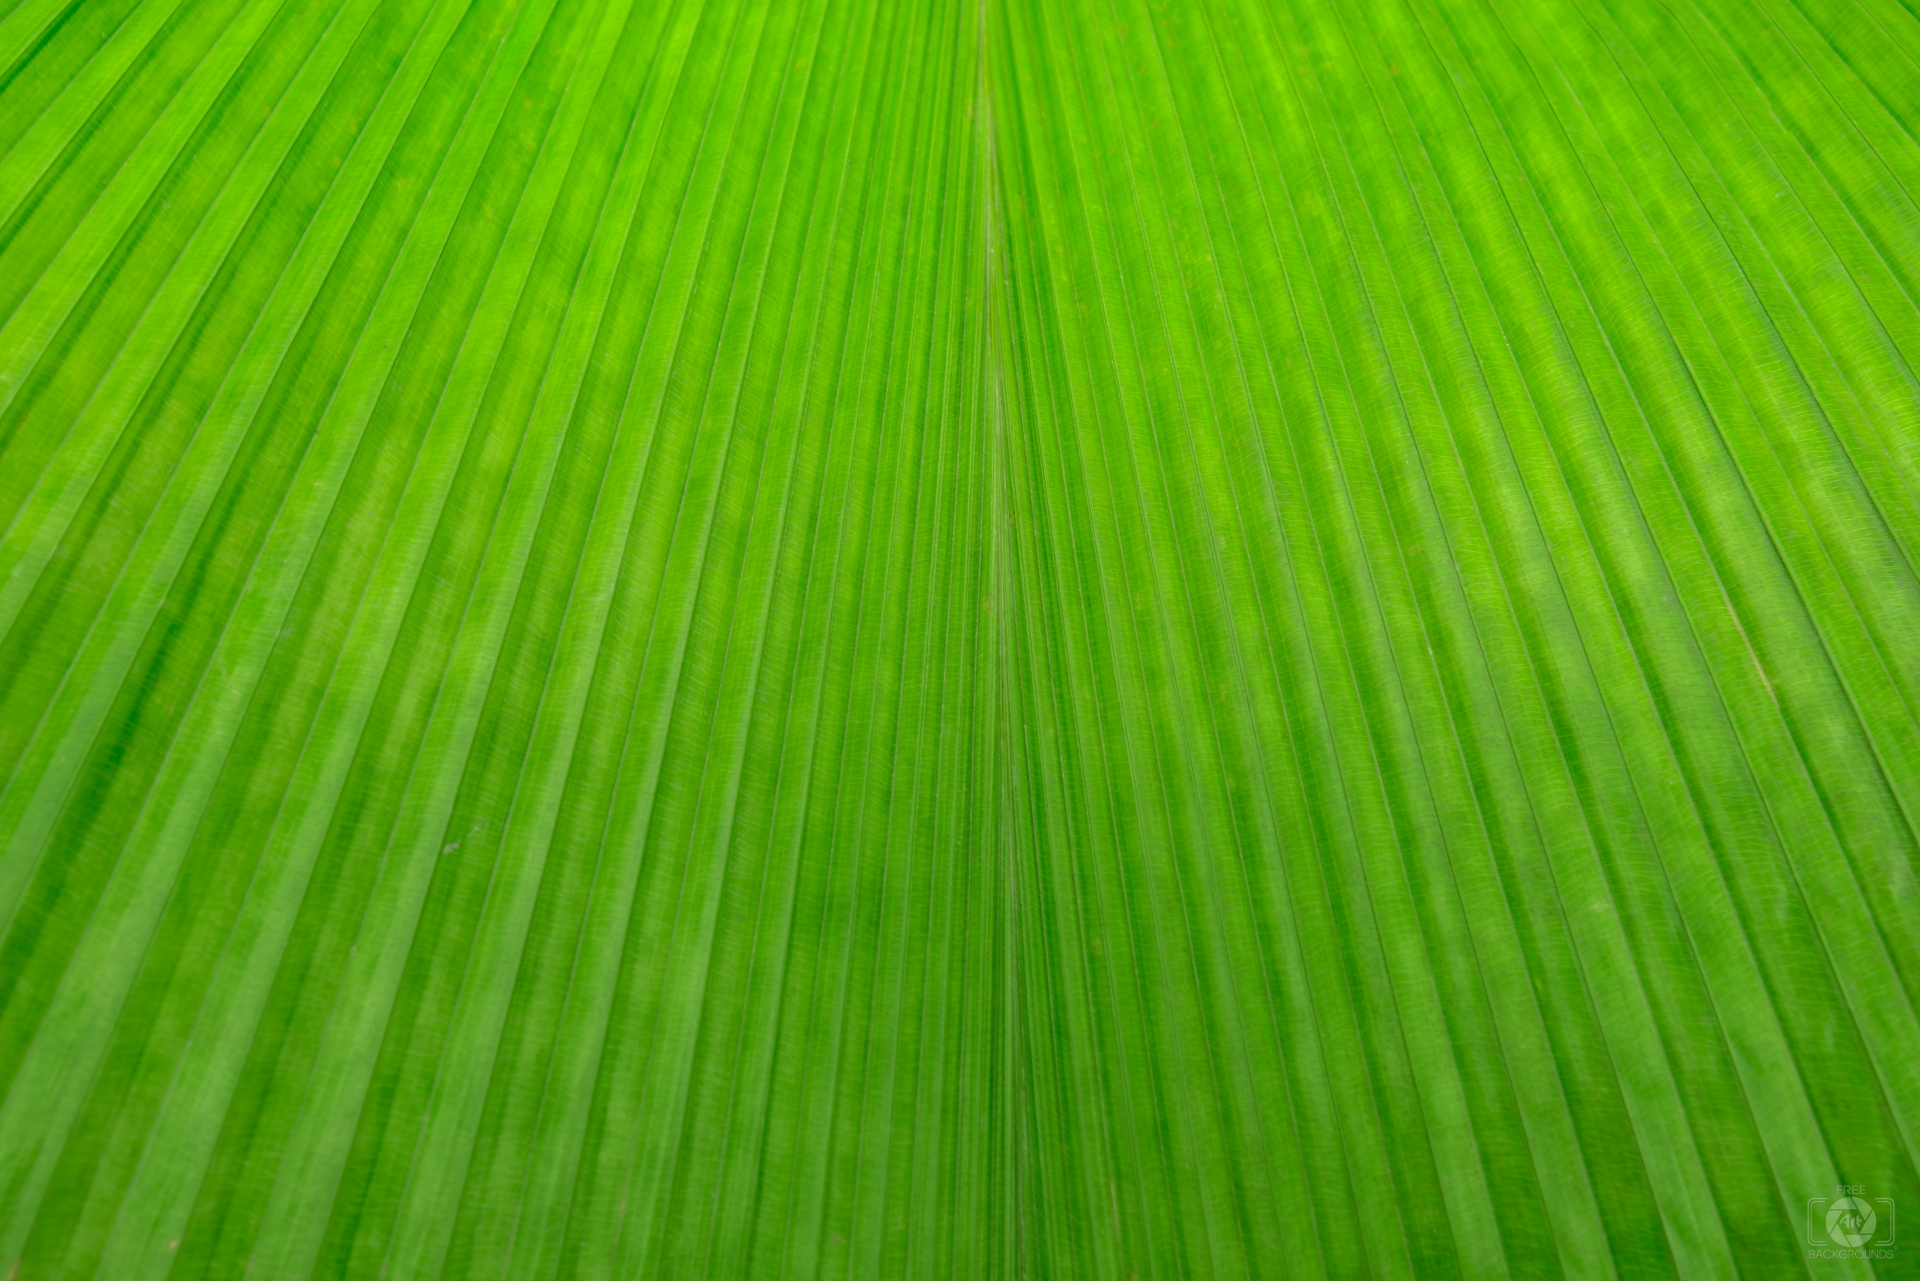 Palm Leaf Texture - High-quality Free Backgrounds